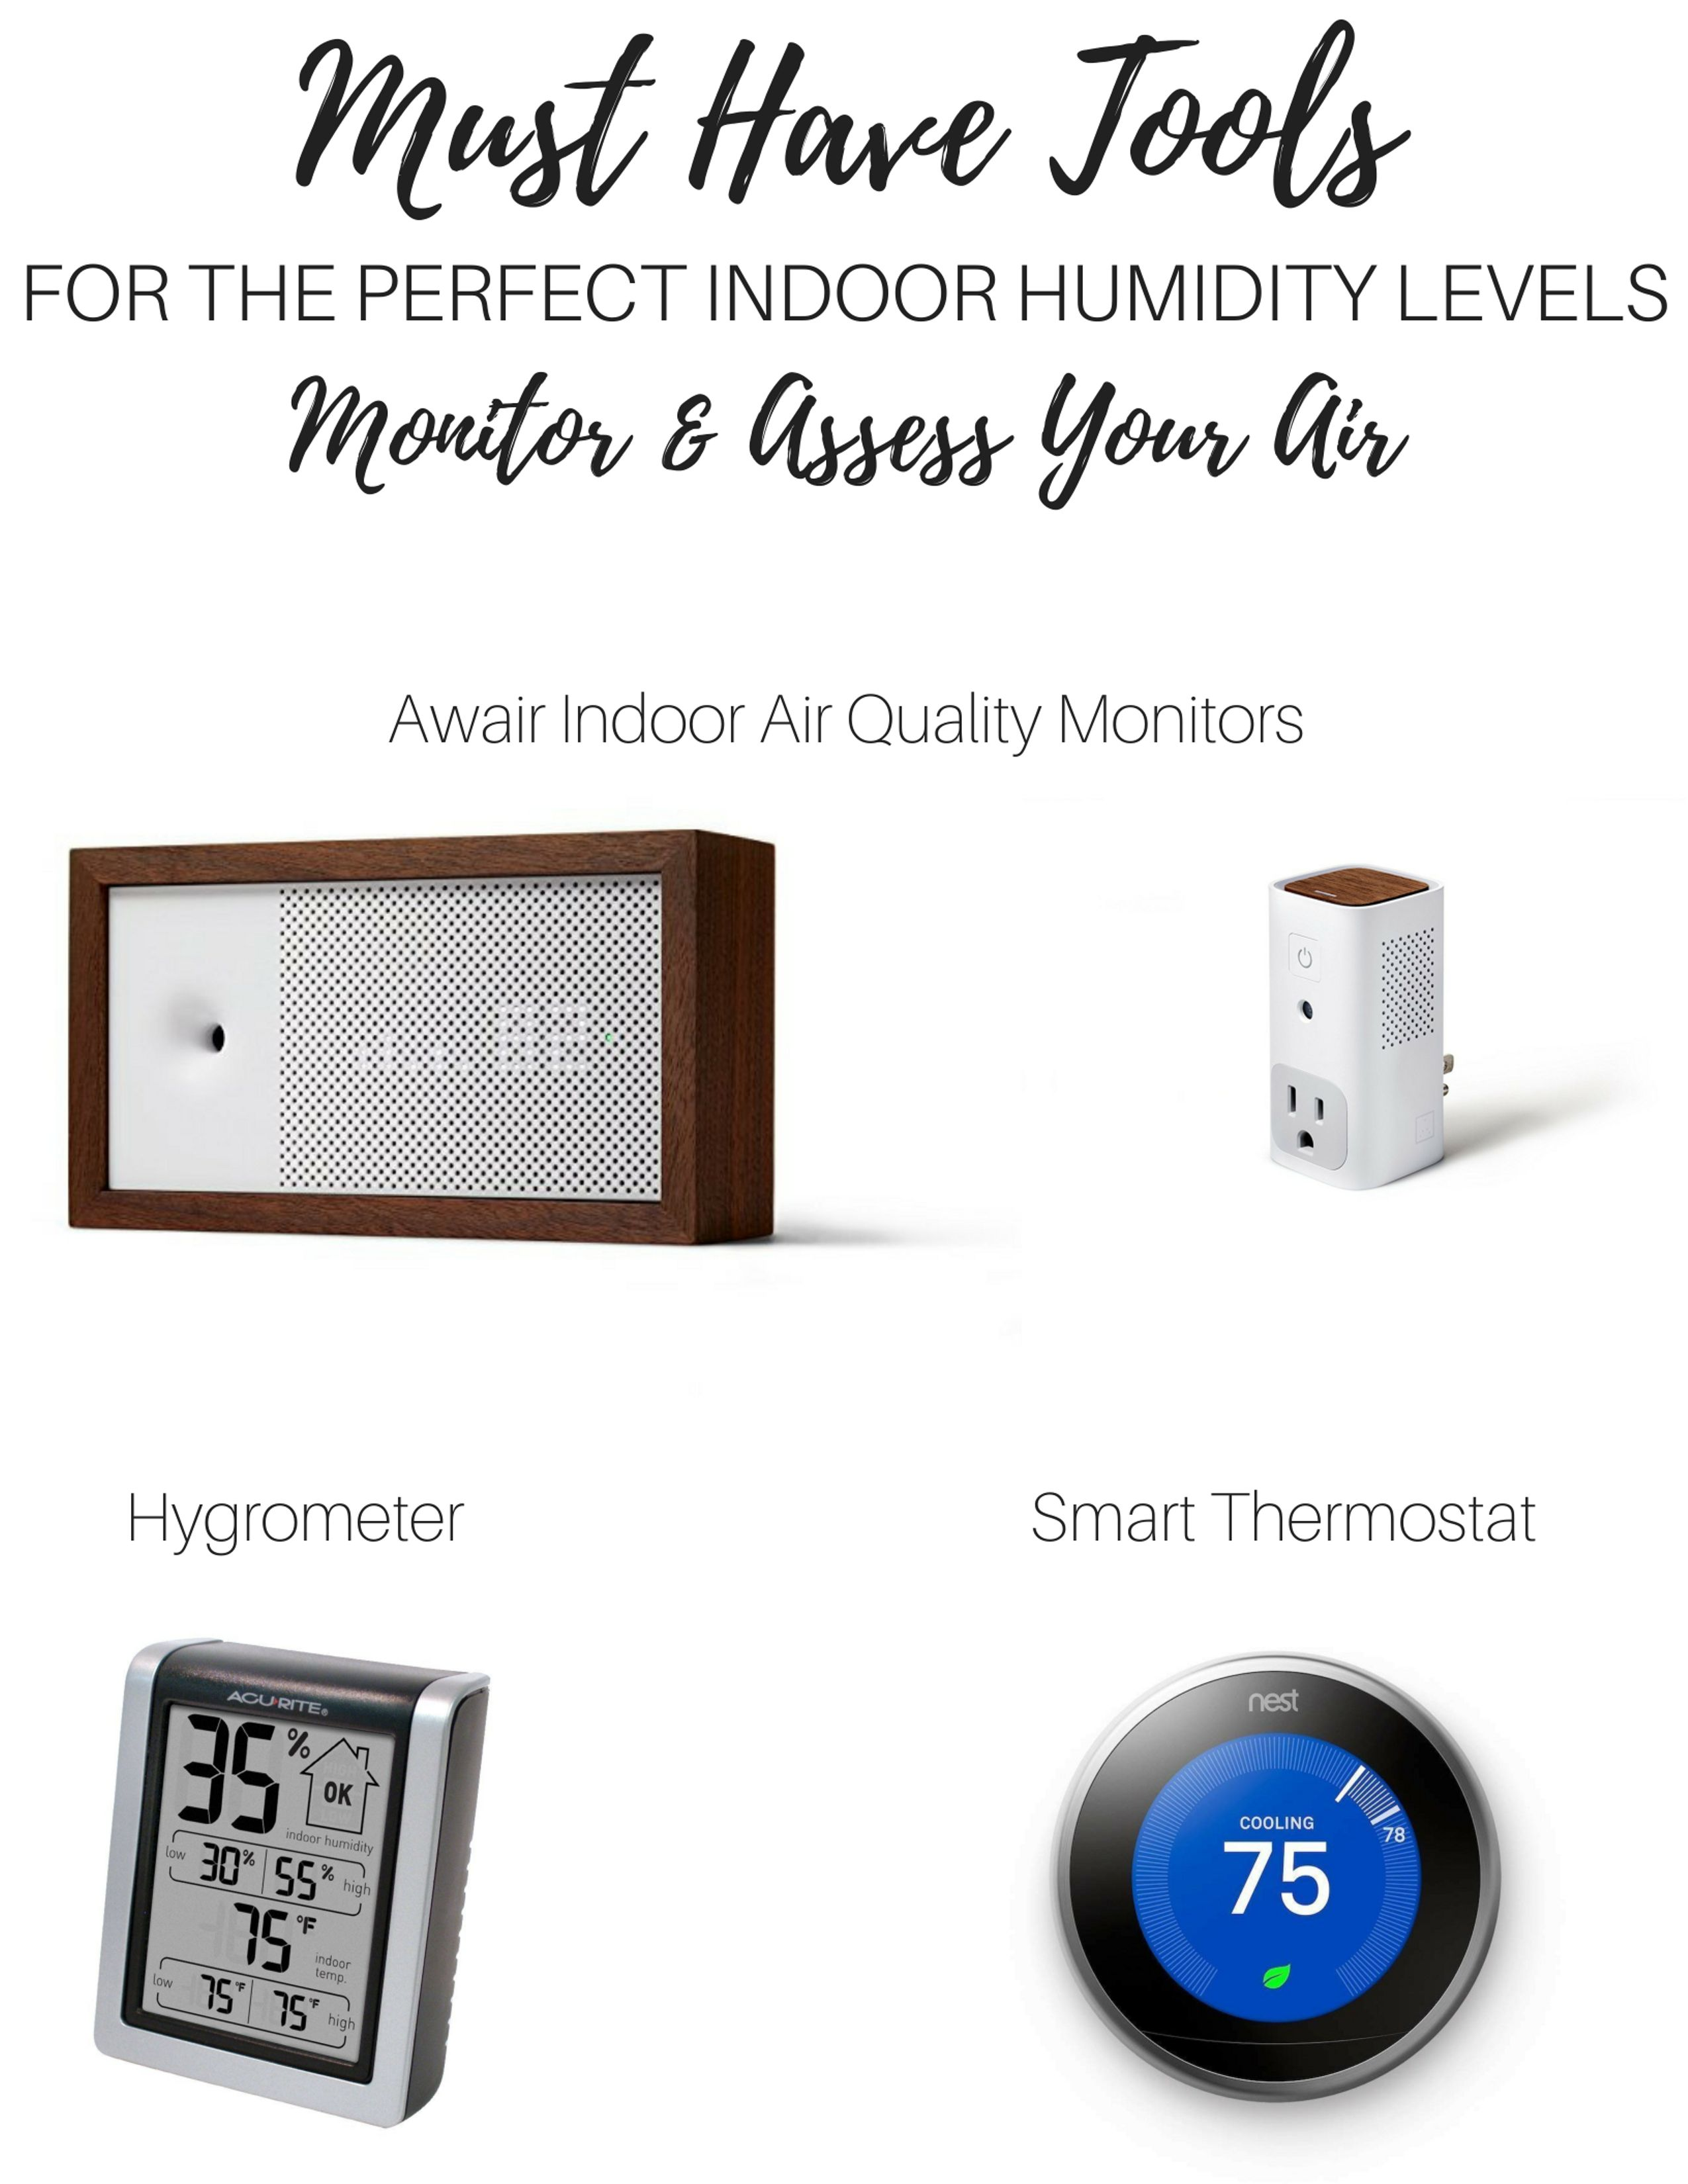 What Should The Humidity Level Be In A House The Ideal Home Humidity Humidity Levels Air Quality Monitor Humidity